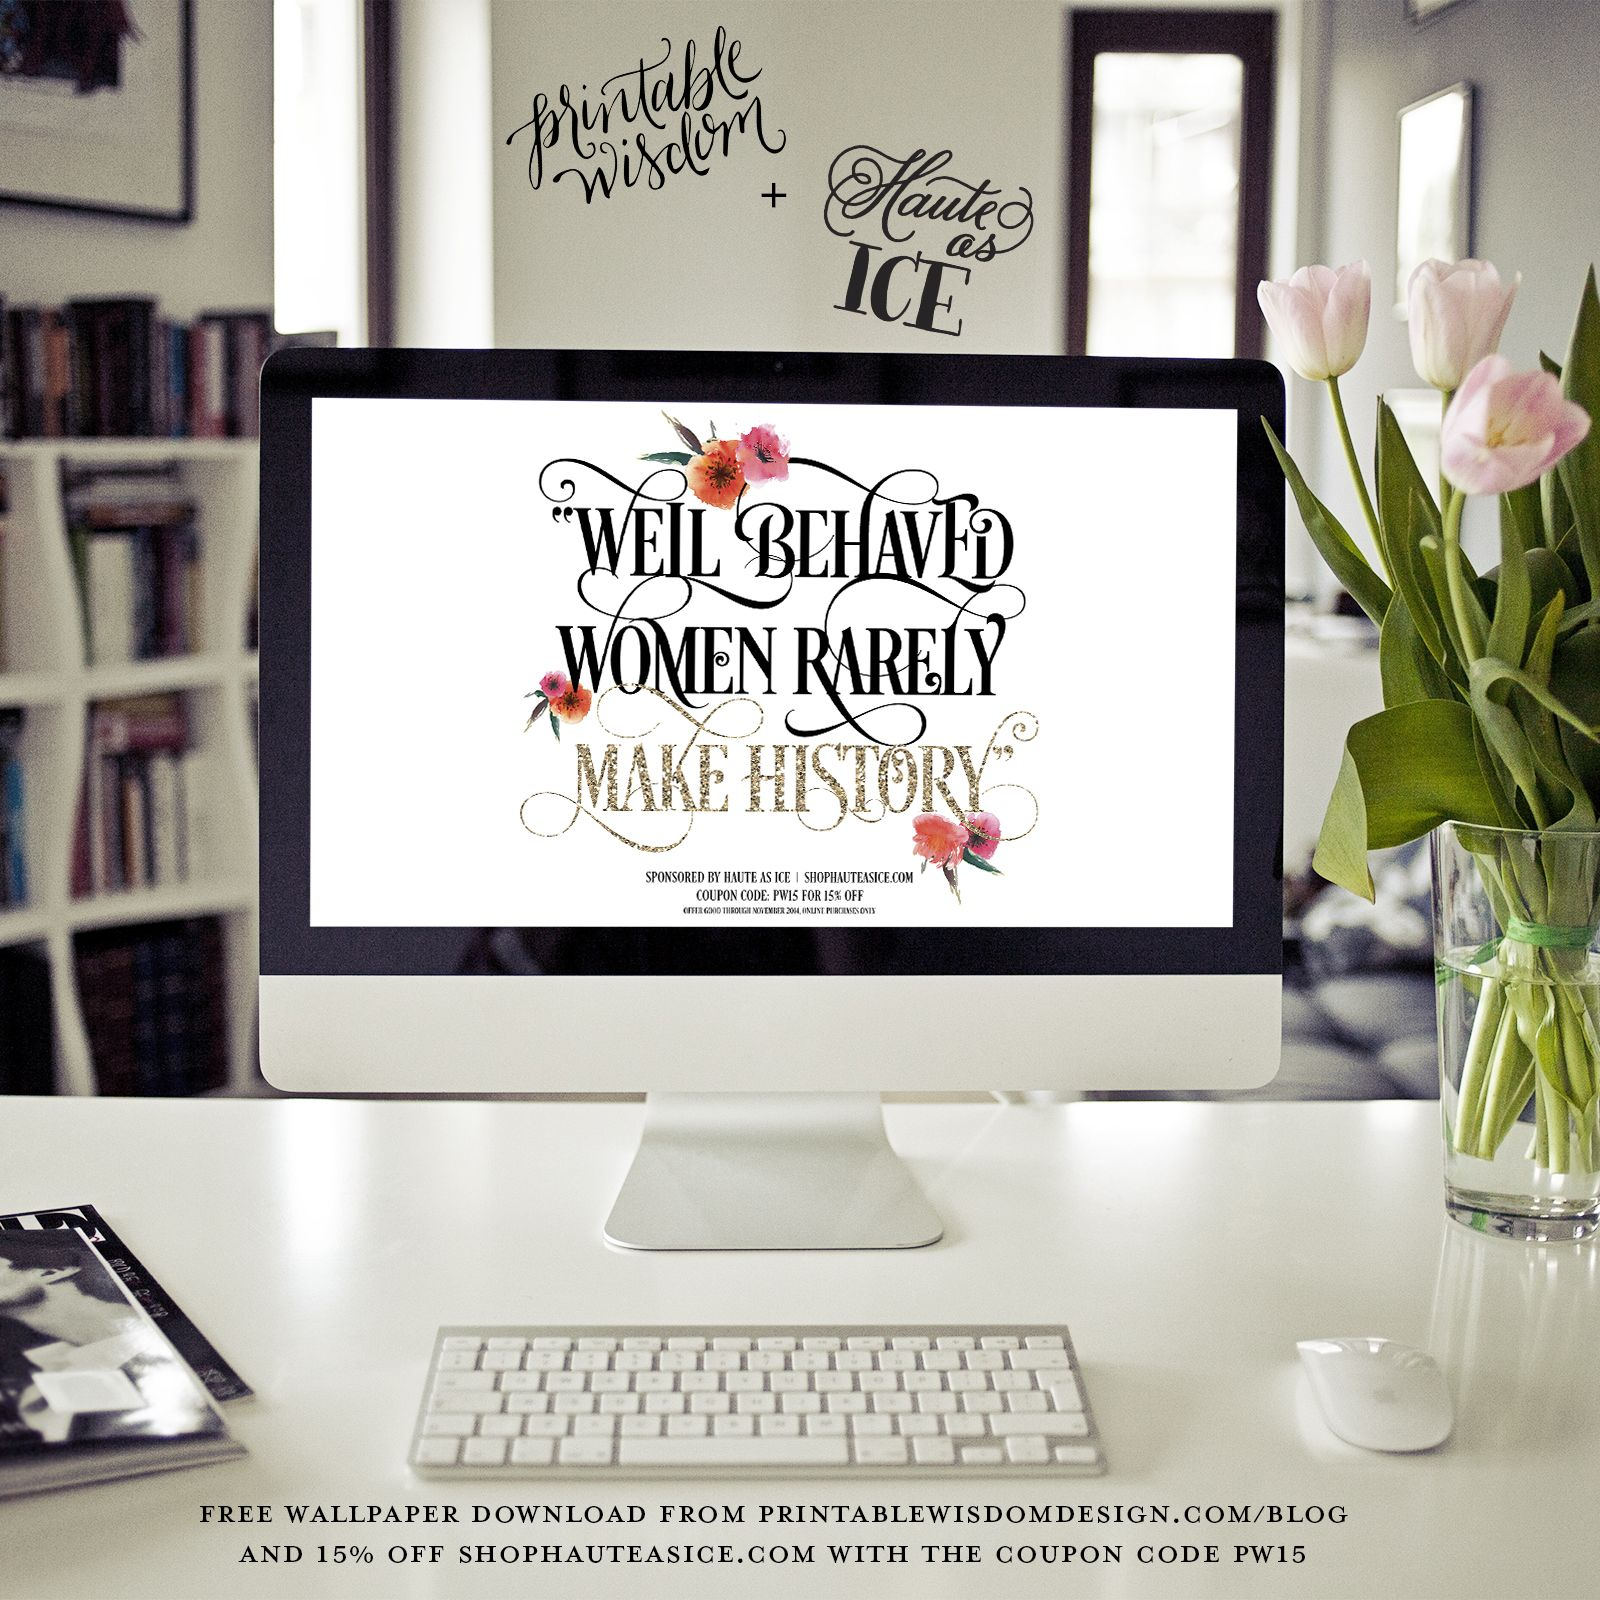 Printable Wisdom free wallpaper and background - Plus a 15% off coupon code for Haute as Ice ...